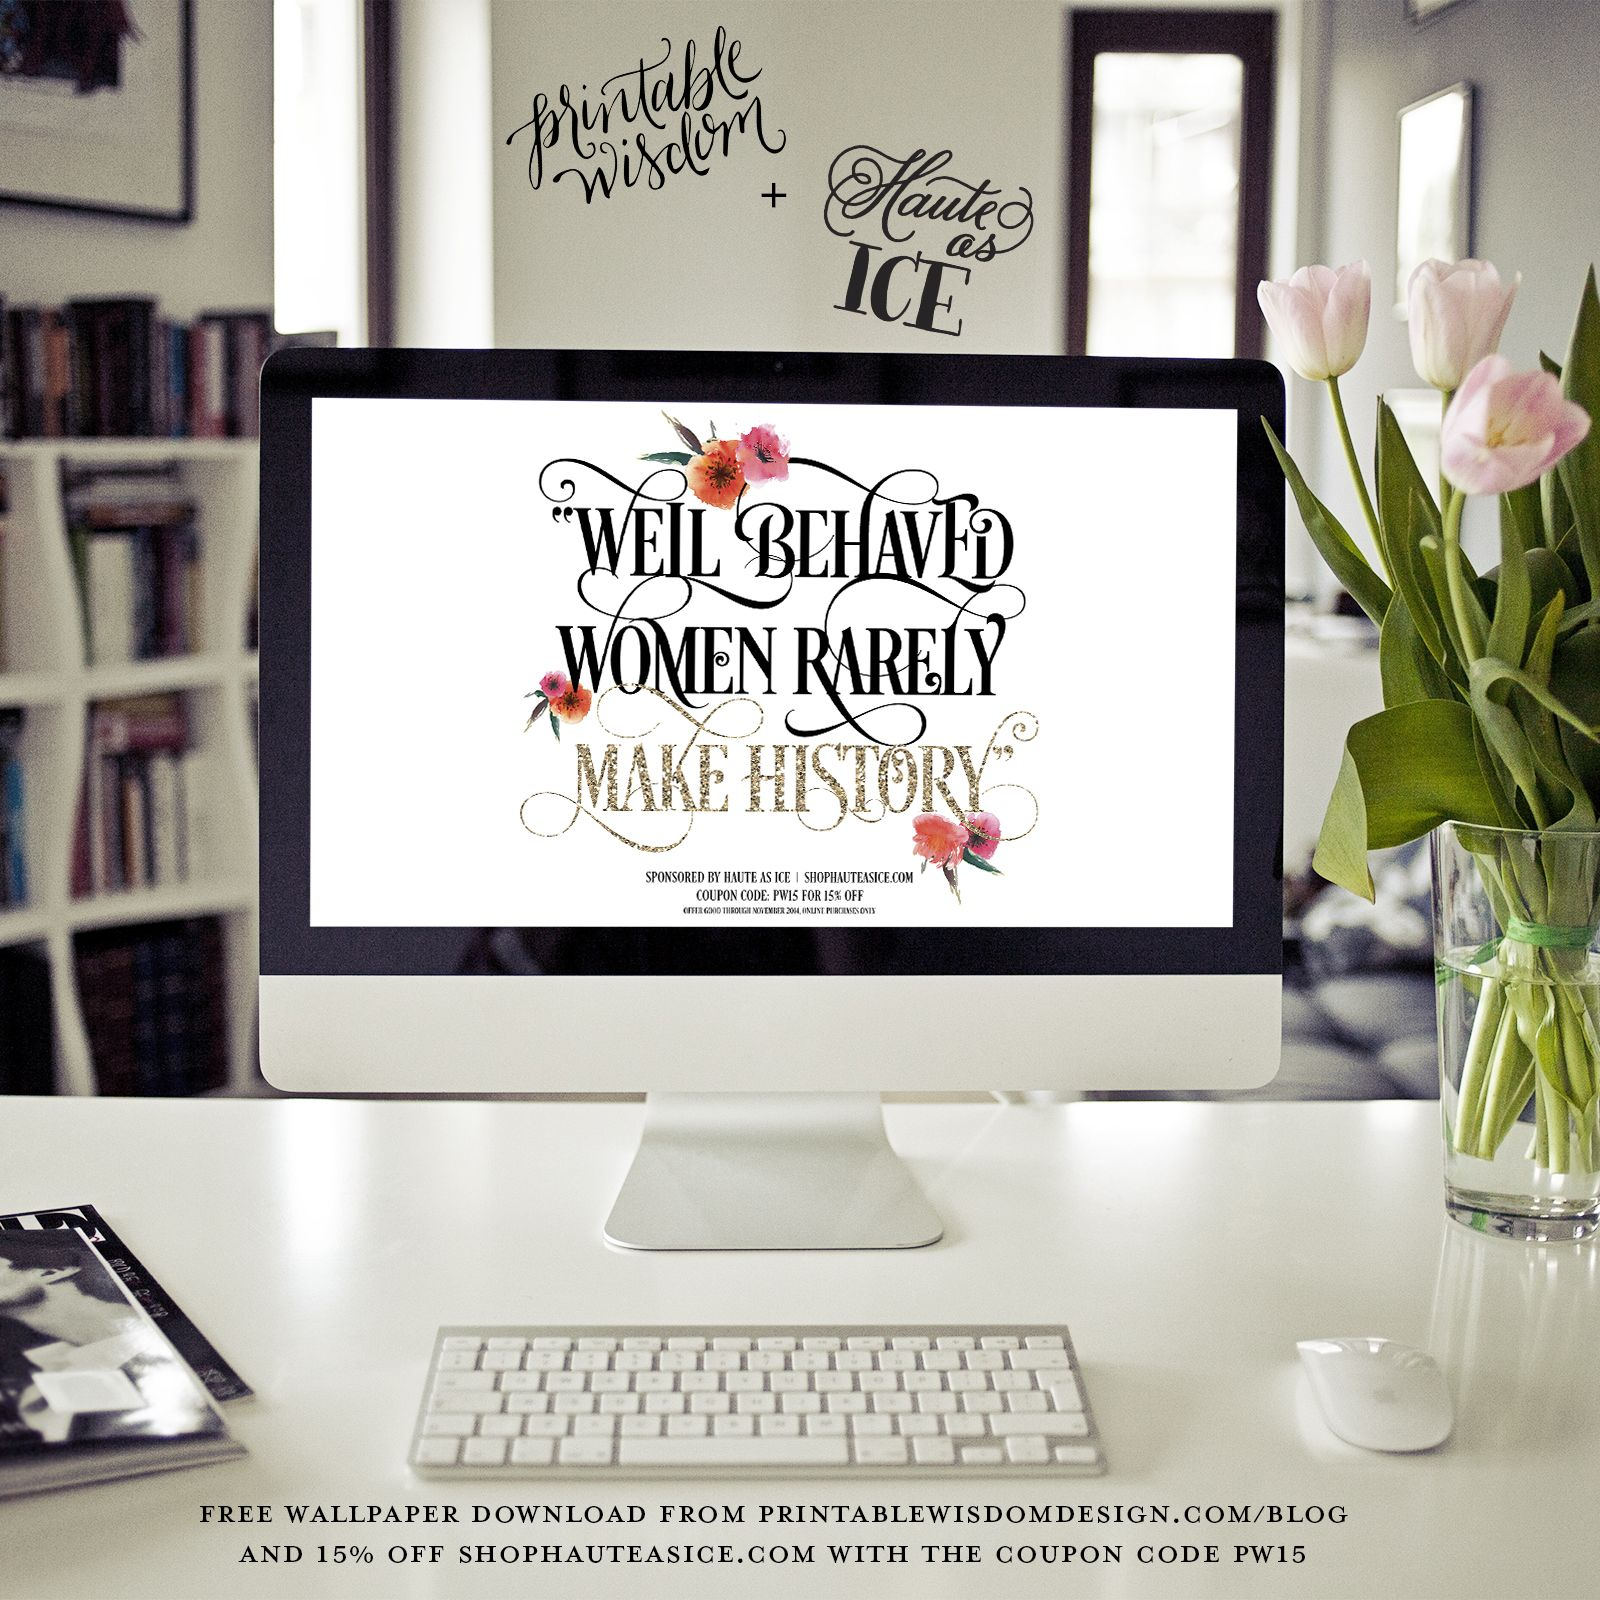 Printable Wisdom free wallpaper and background - Plus a 15% off coupon code for Haute as Ice ...